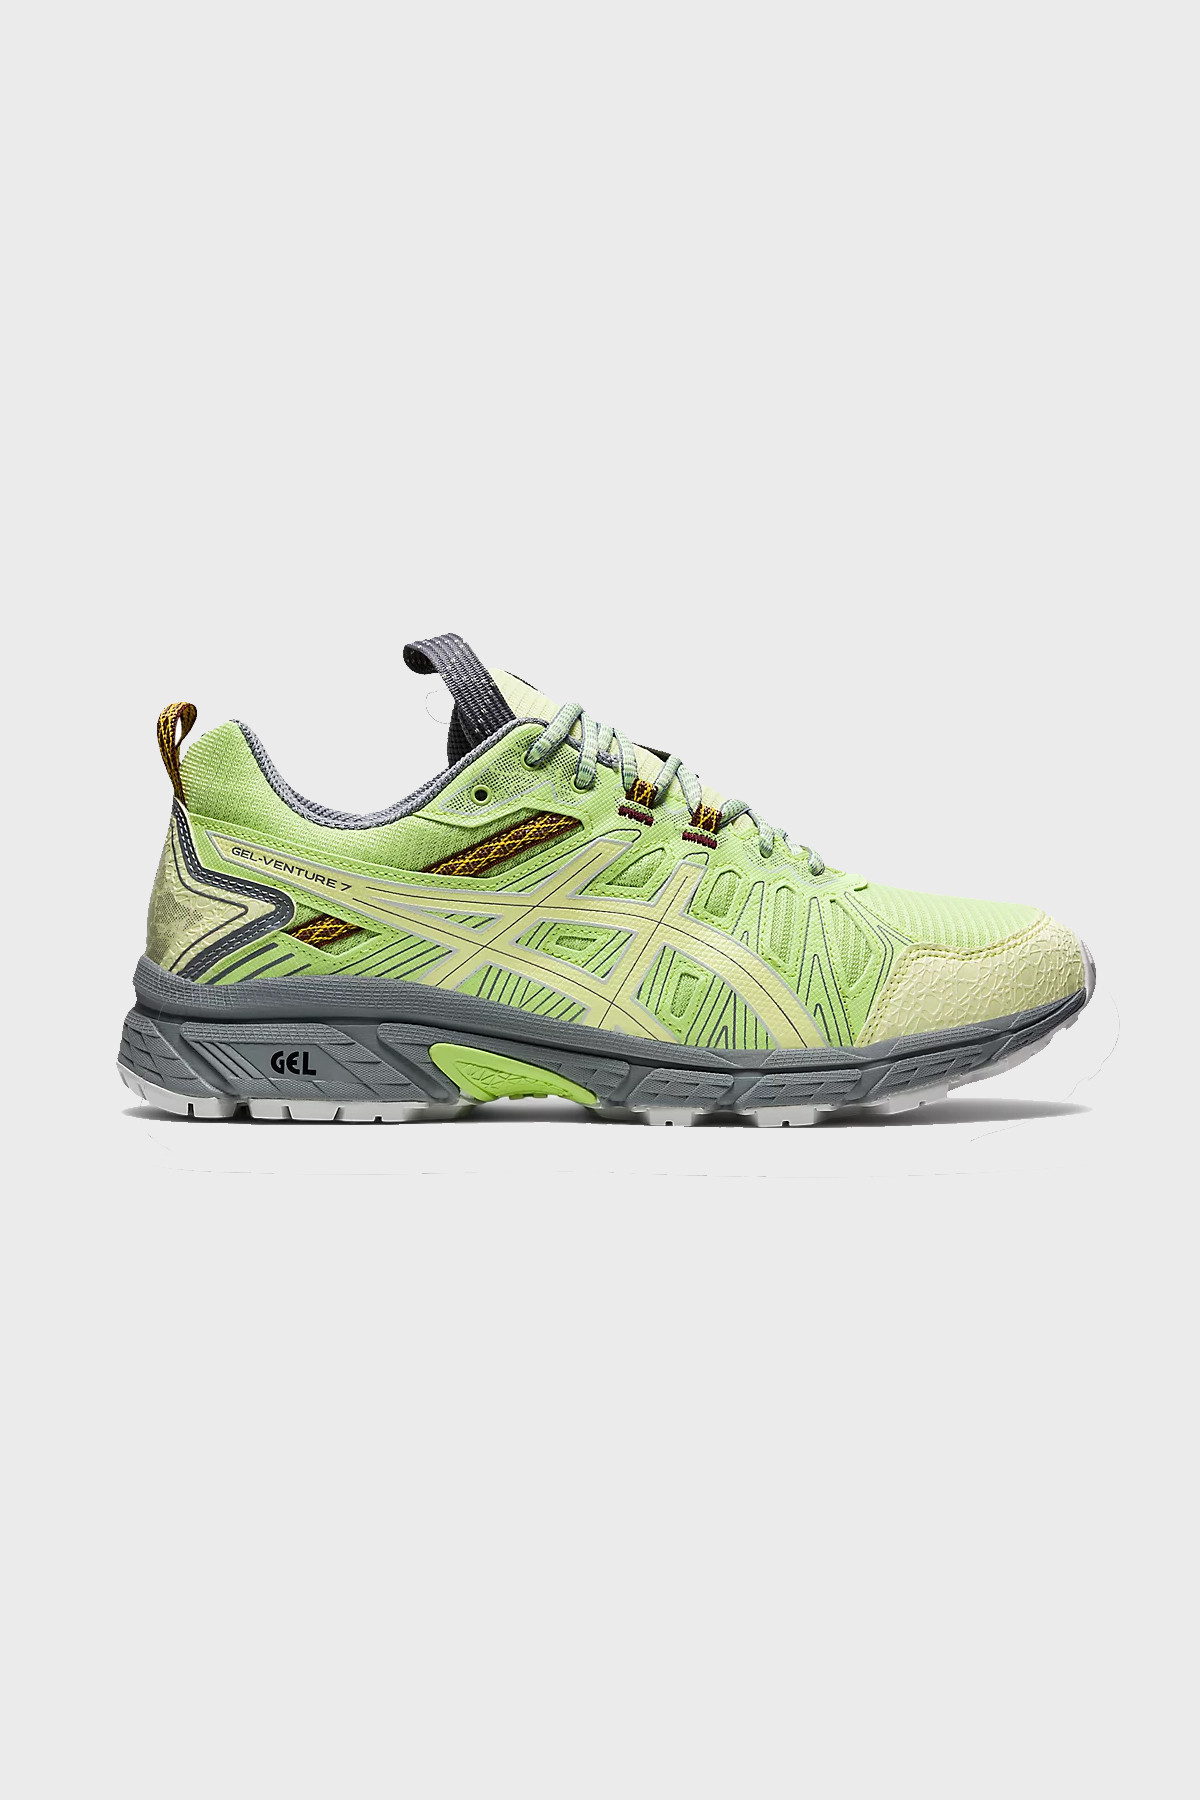 ASICS - GEL VENTURE 7 - LIME GREEN HUDDLE YELLOW